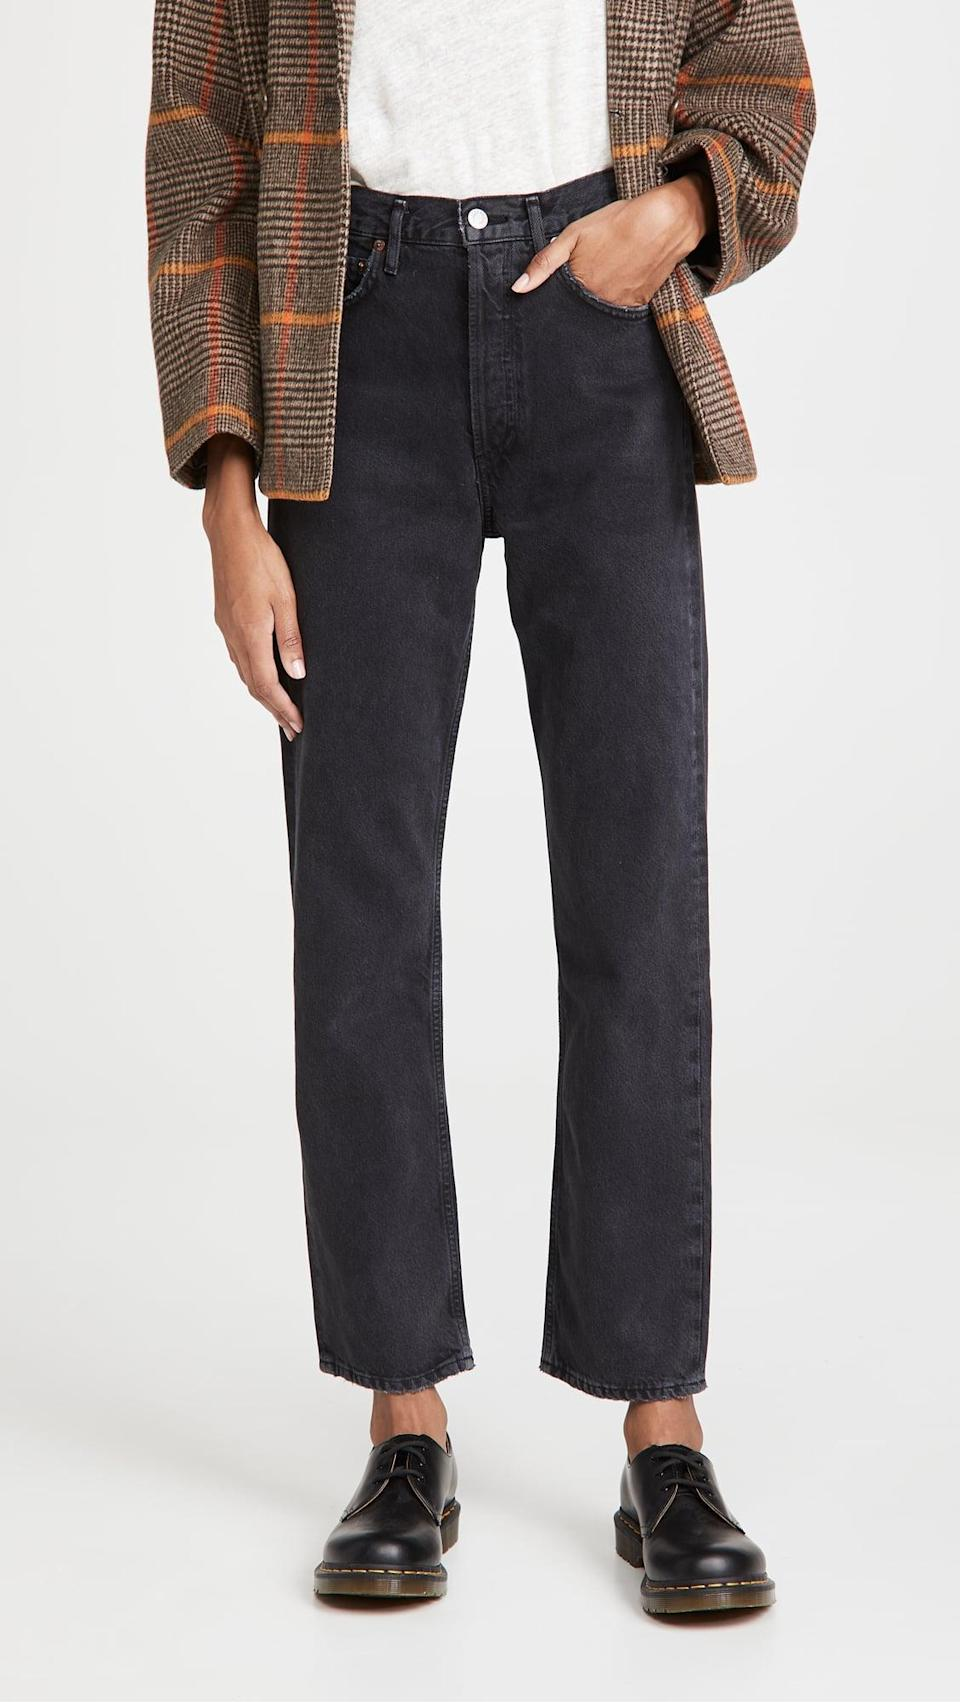 <p>The cool <span>AGOLDE The 90's Pinch Waist Jeans</span> ($178) have a vintage style to them that we love. The soft material is ultracomfortable too.</p>